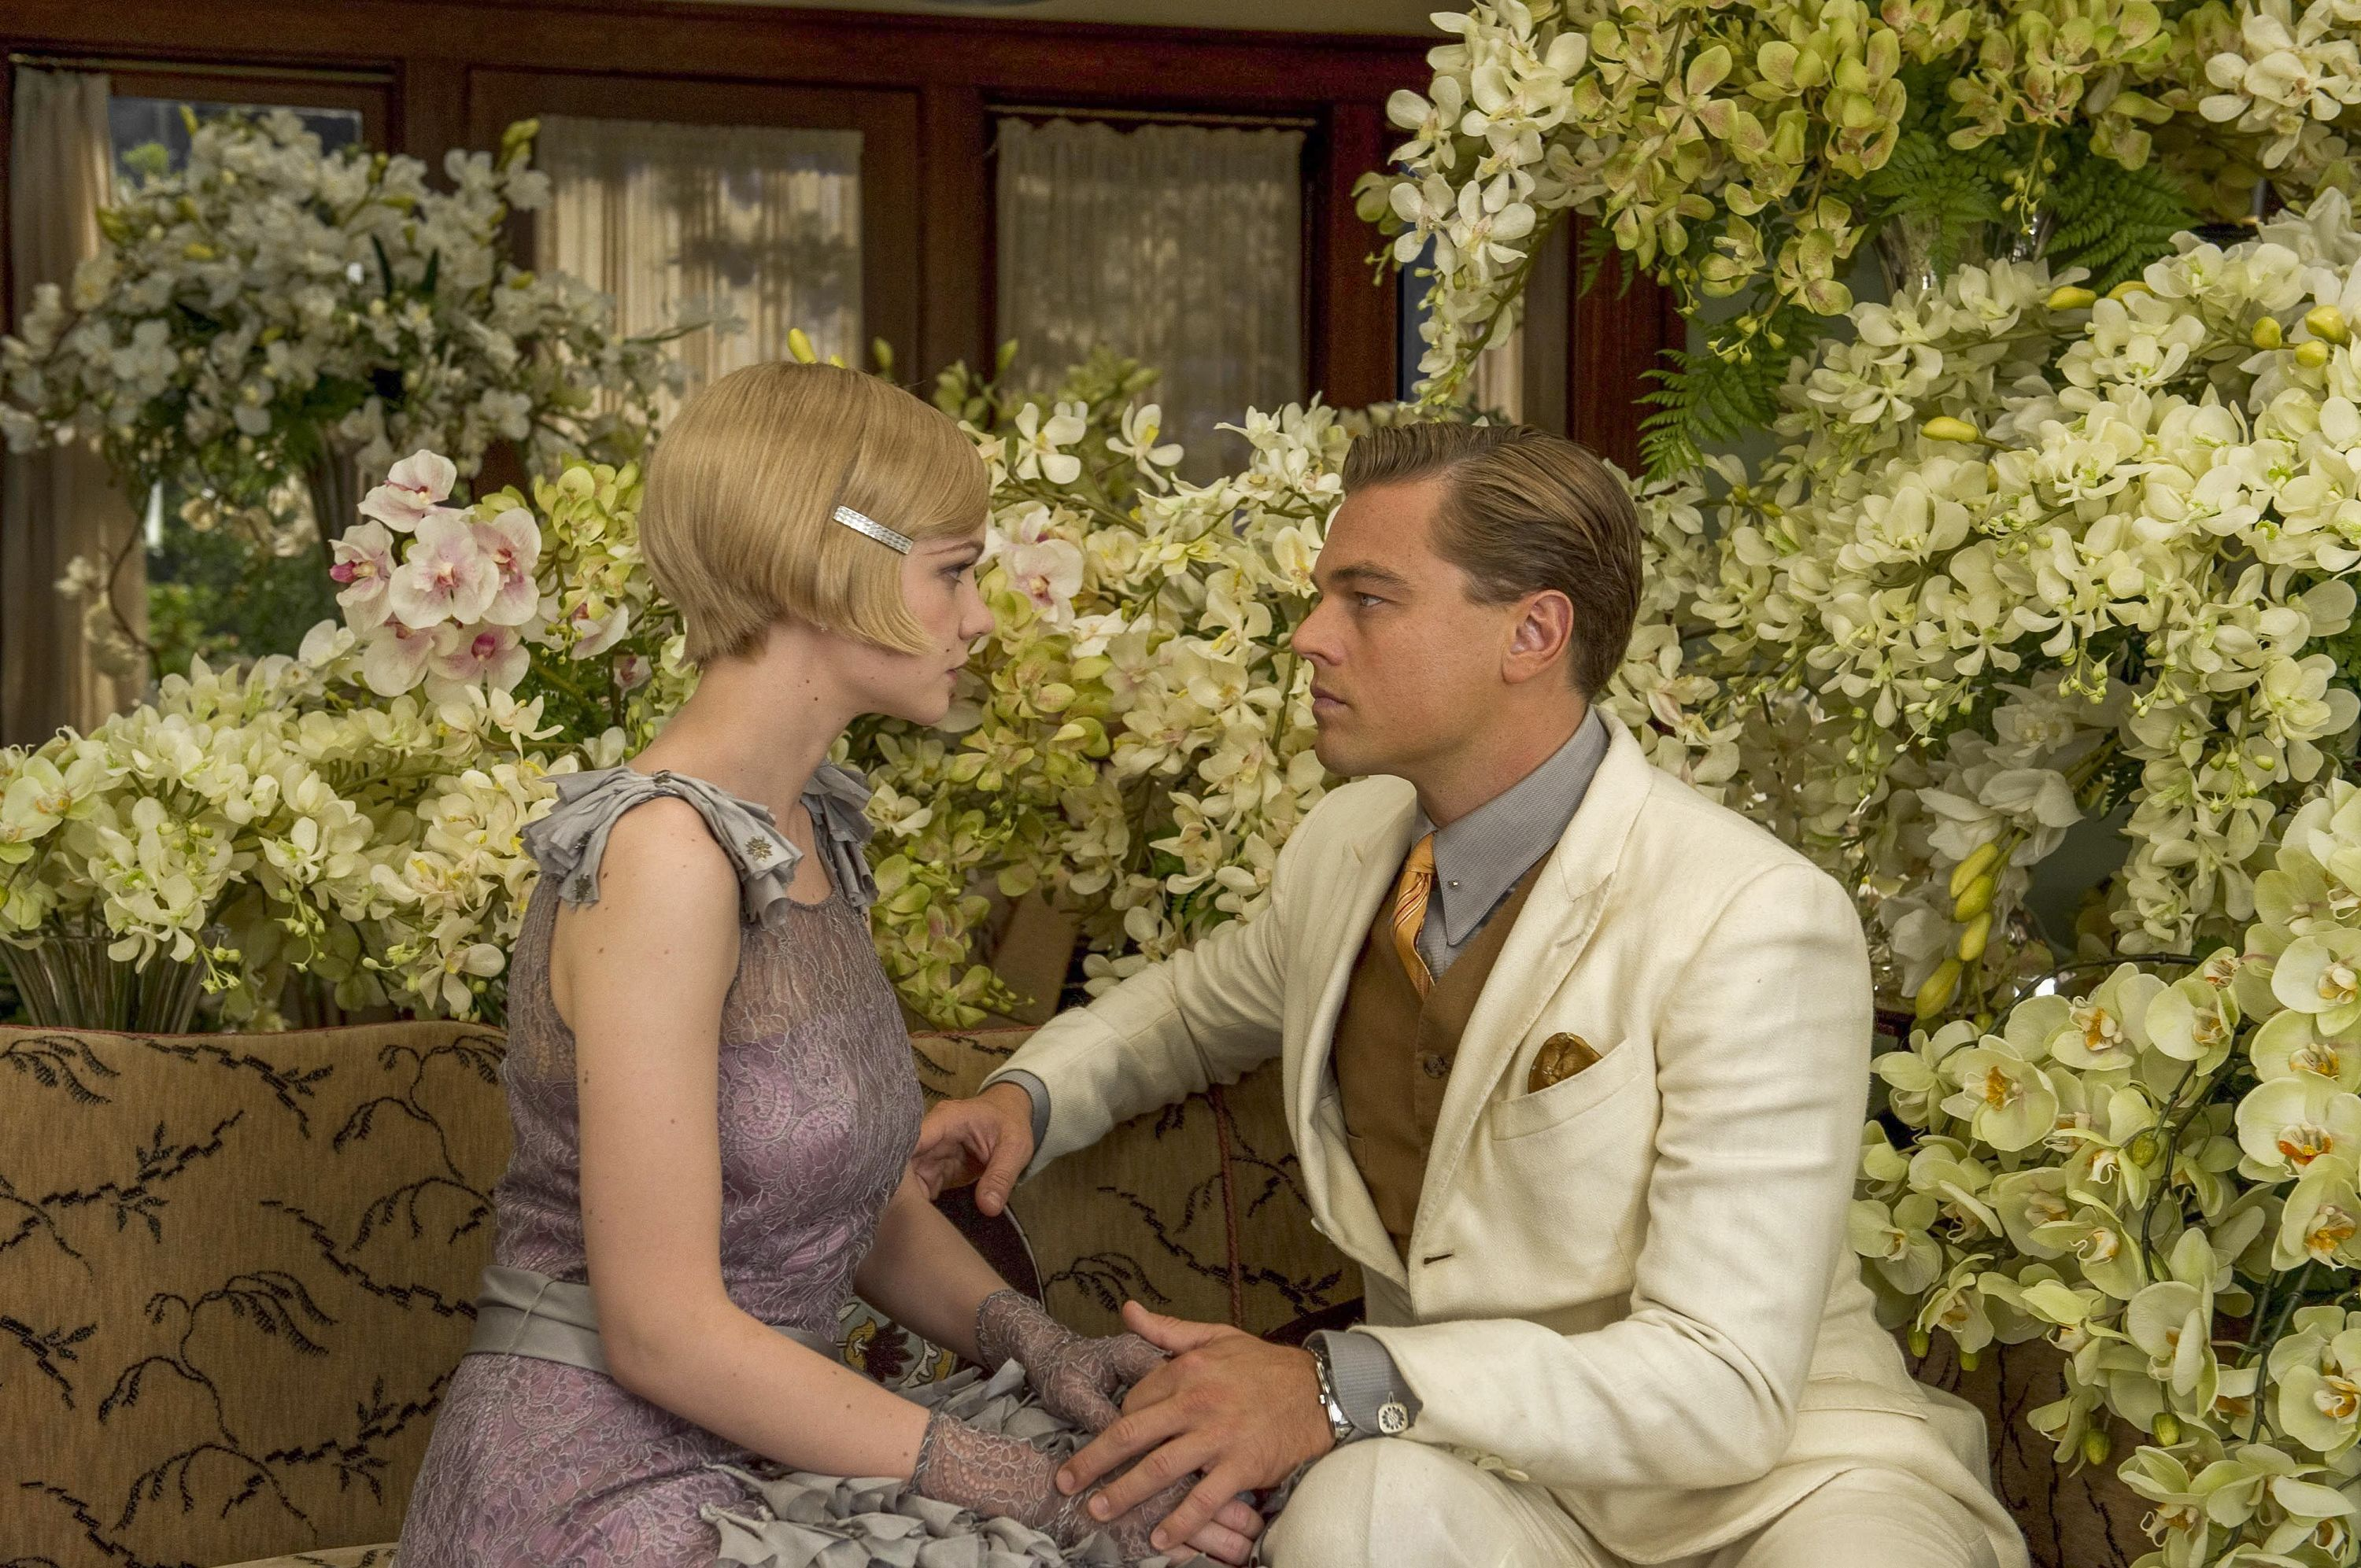 The Great Gatsby's Copyright Will Expire at the End of 2020